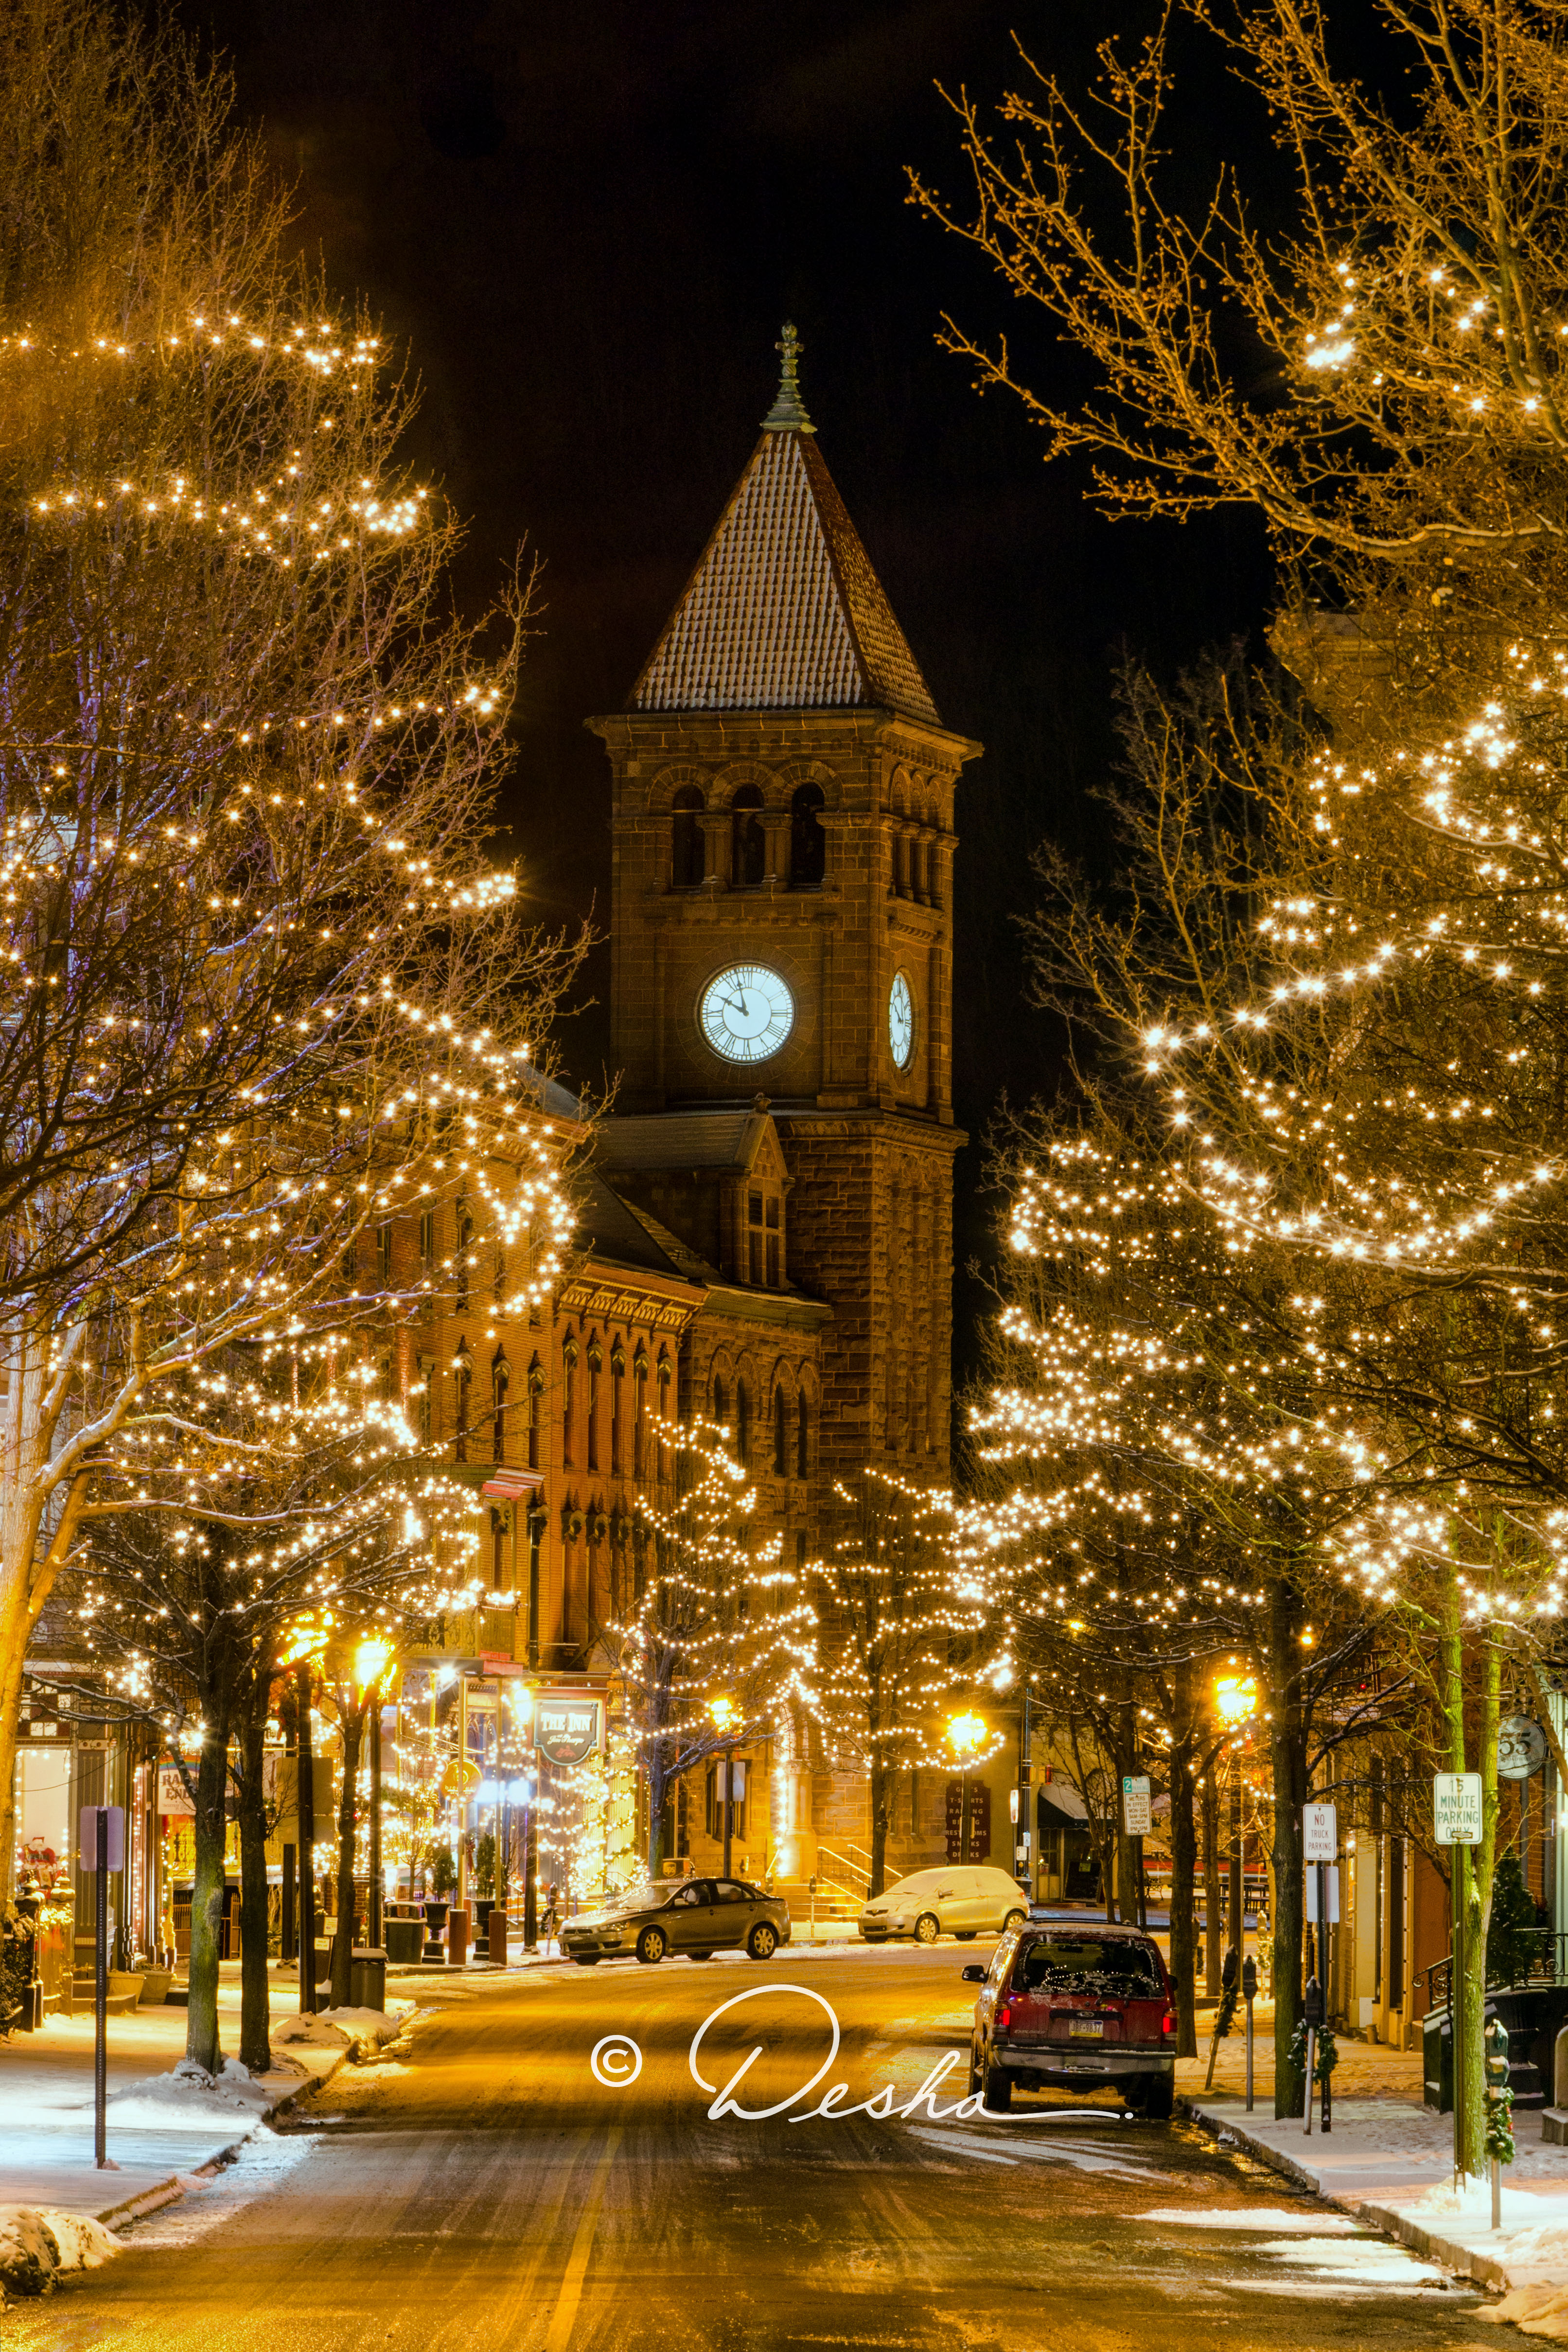 Downtown JT Courthouse Christmas Eve FIN